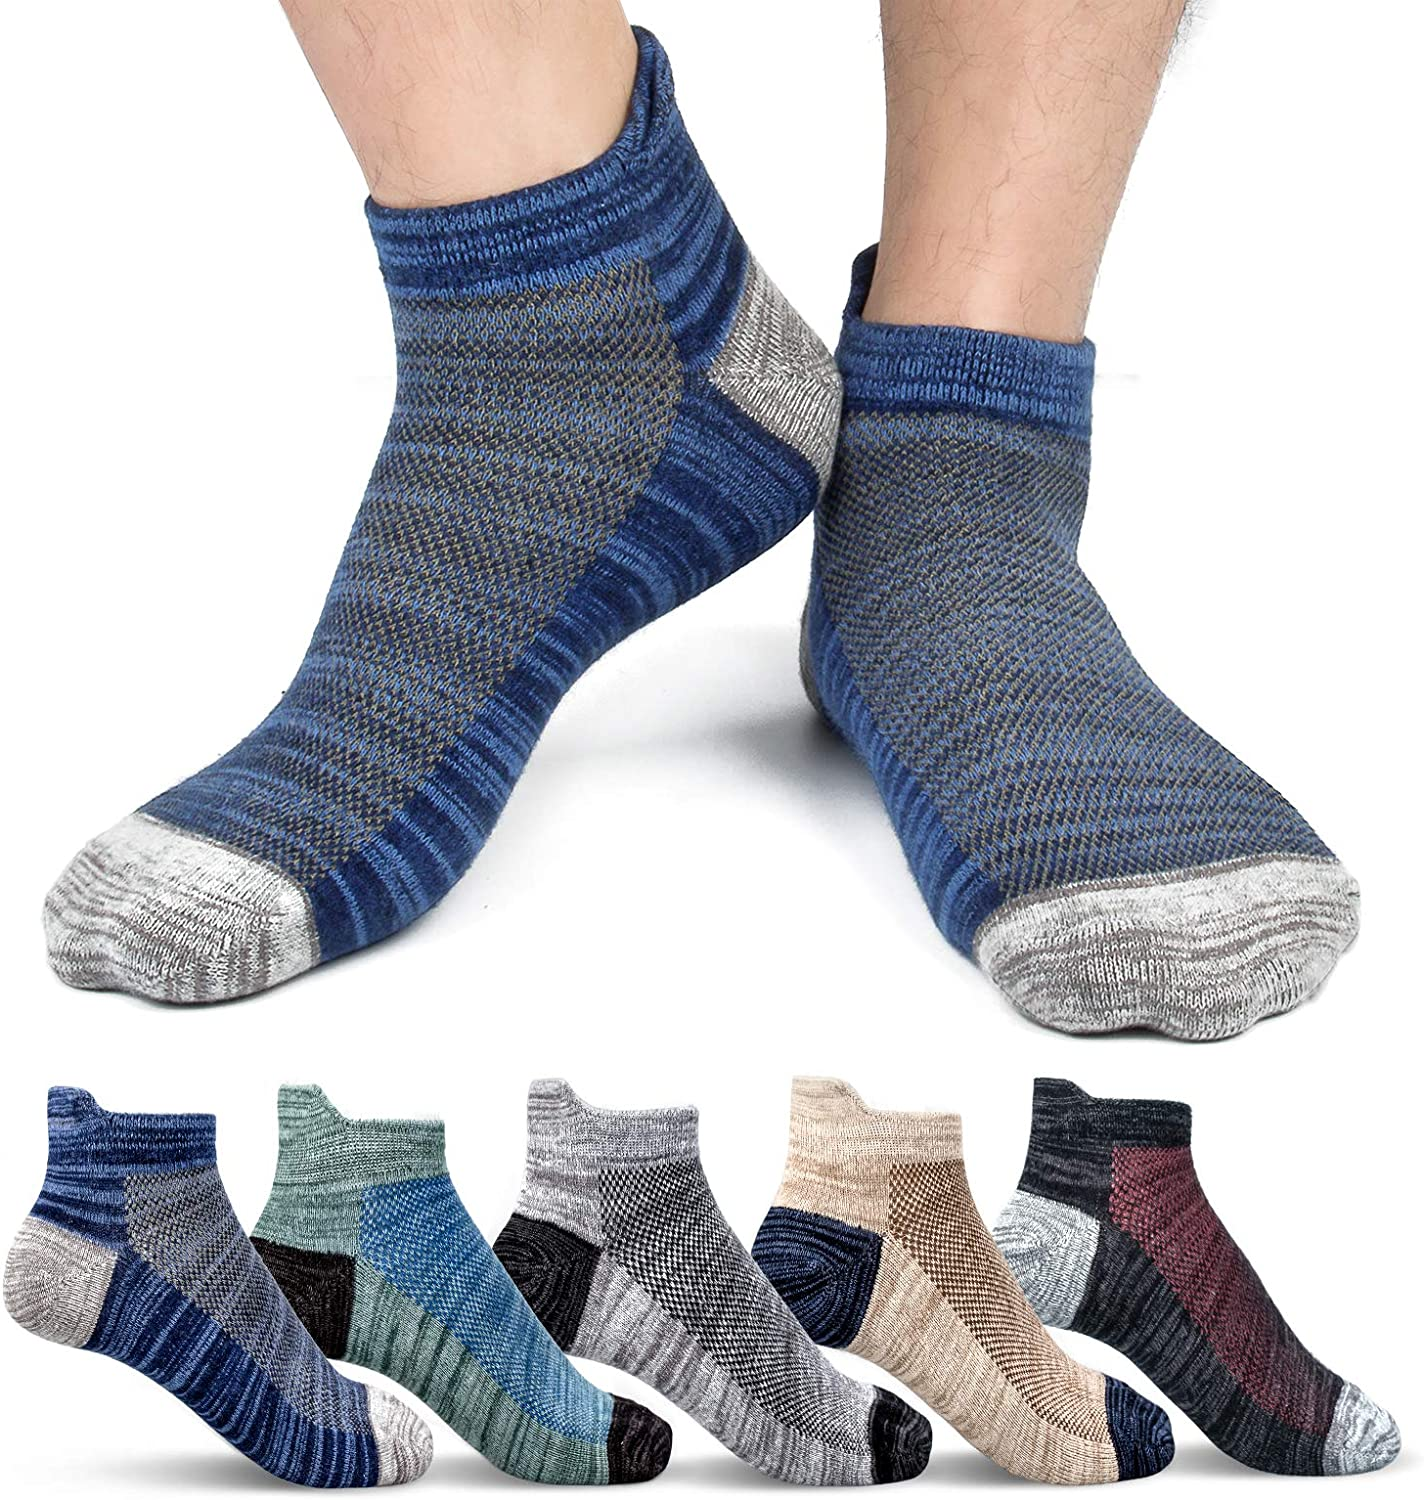 Animer and price revision Mens Ankle Socks Cotton Athletic cheap Sports Sock Moisture Wicking So